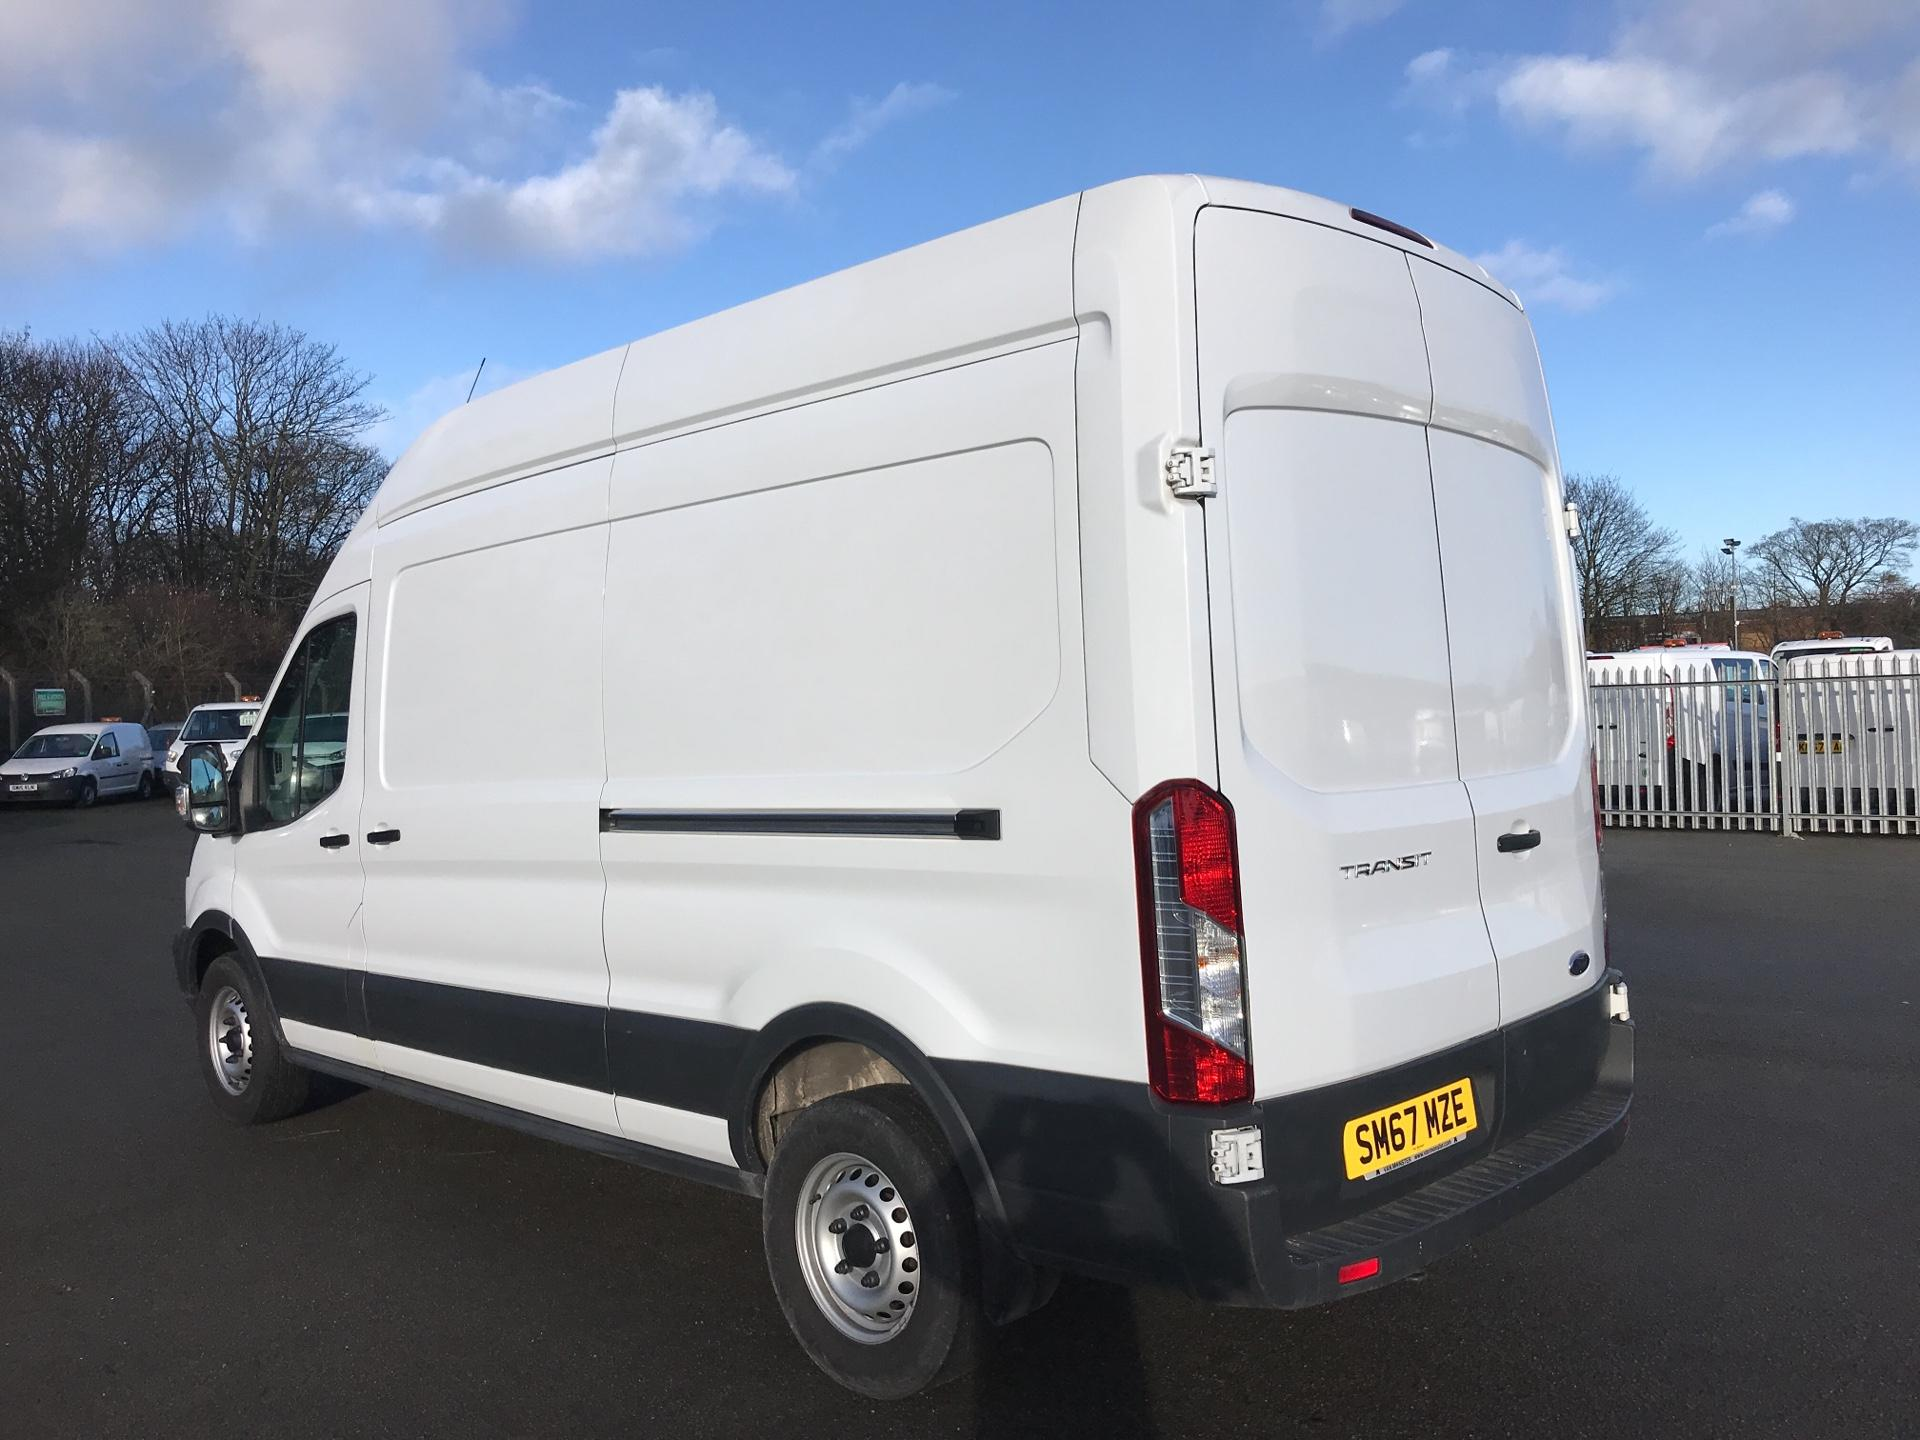 2018 Ford Transit L3 H3 VAN 130PS EURO 6  *VALUE RANGE VEHICLE - CONDITION REFLECTED IN PRICE*  (SM67MZE) Image 5